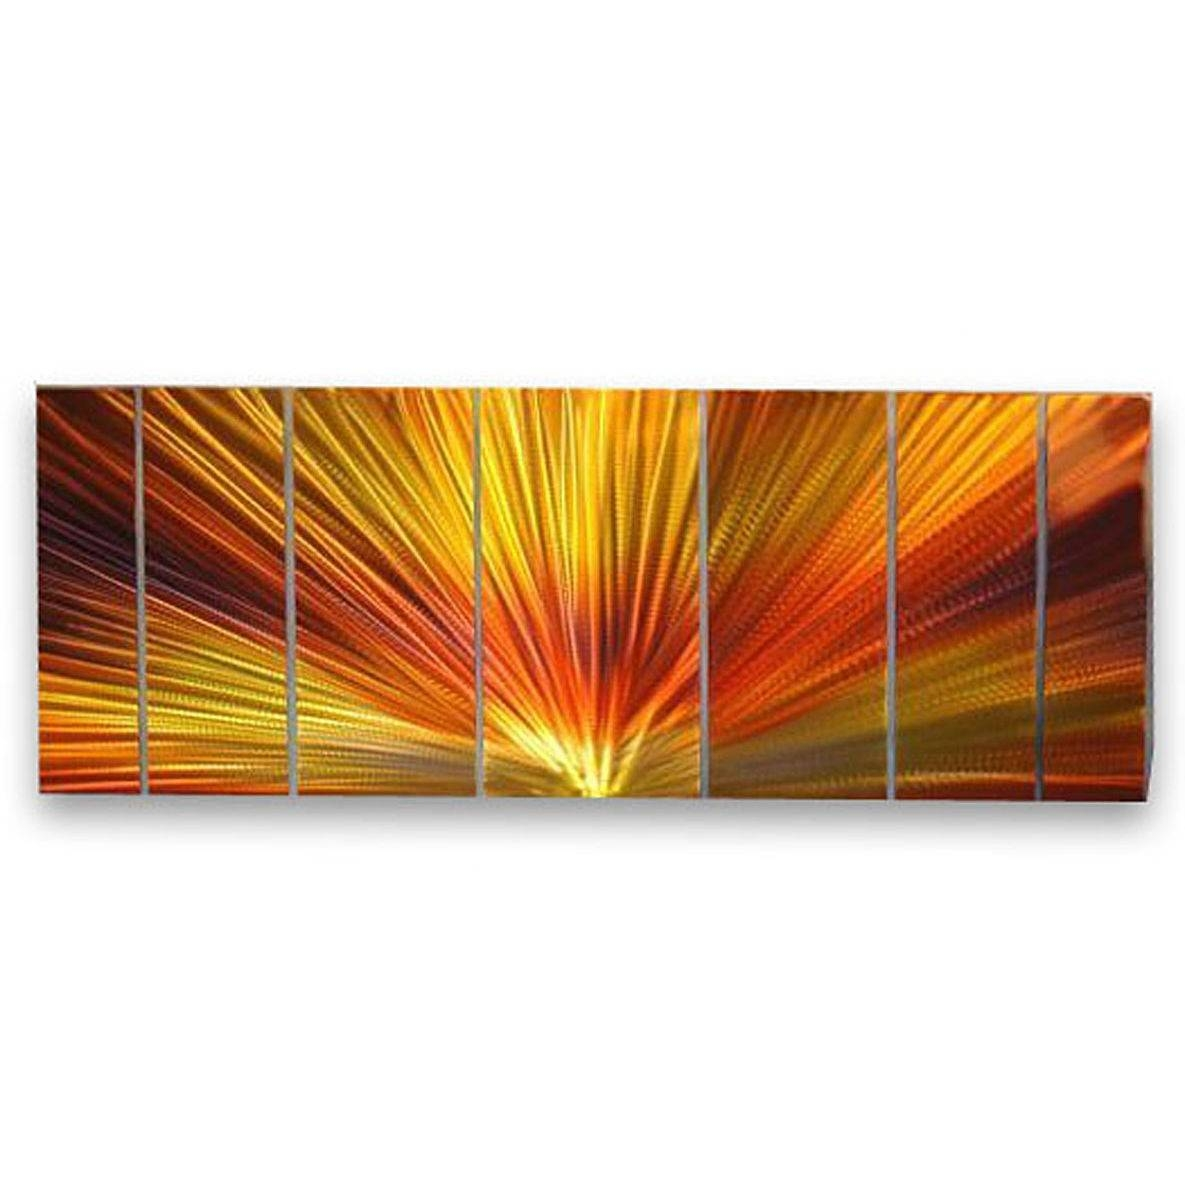 Amazing Design Orange Wall Art Lovely Ideas All My Walls Abstract Intended For Most Recently Released Ash Carl Metal Wall Art (View 2 of 30)